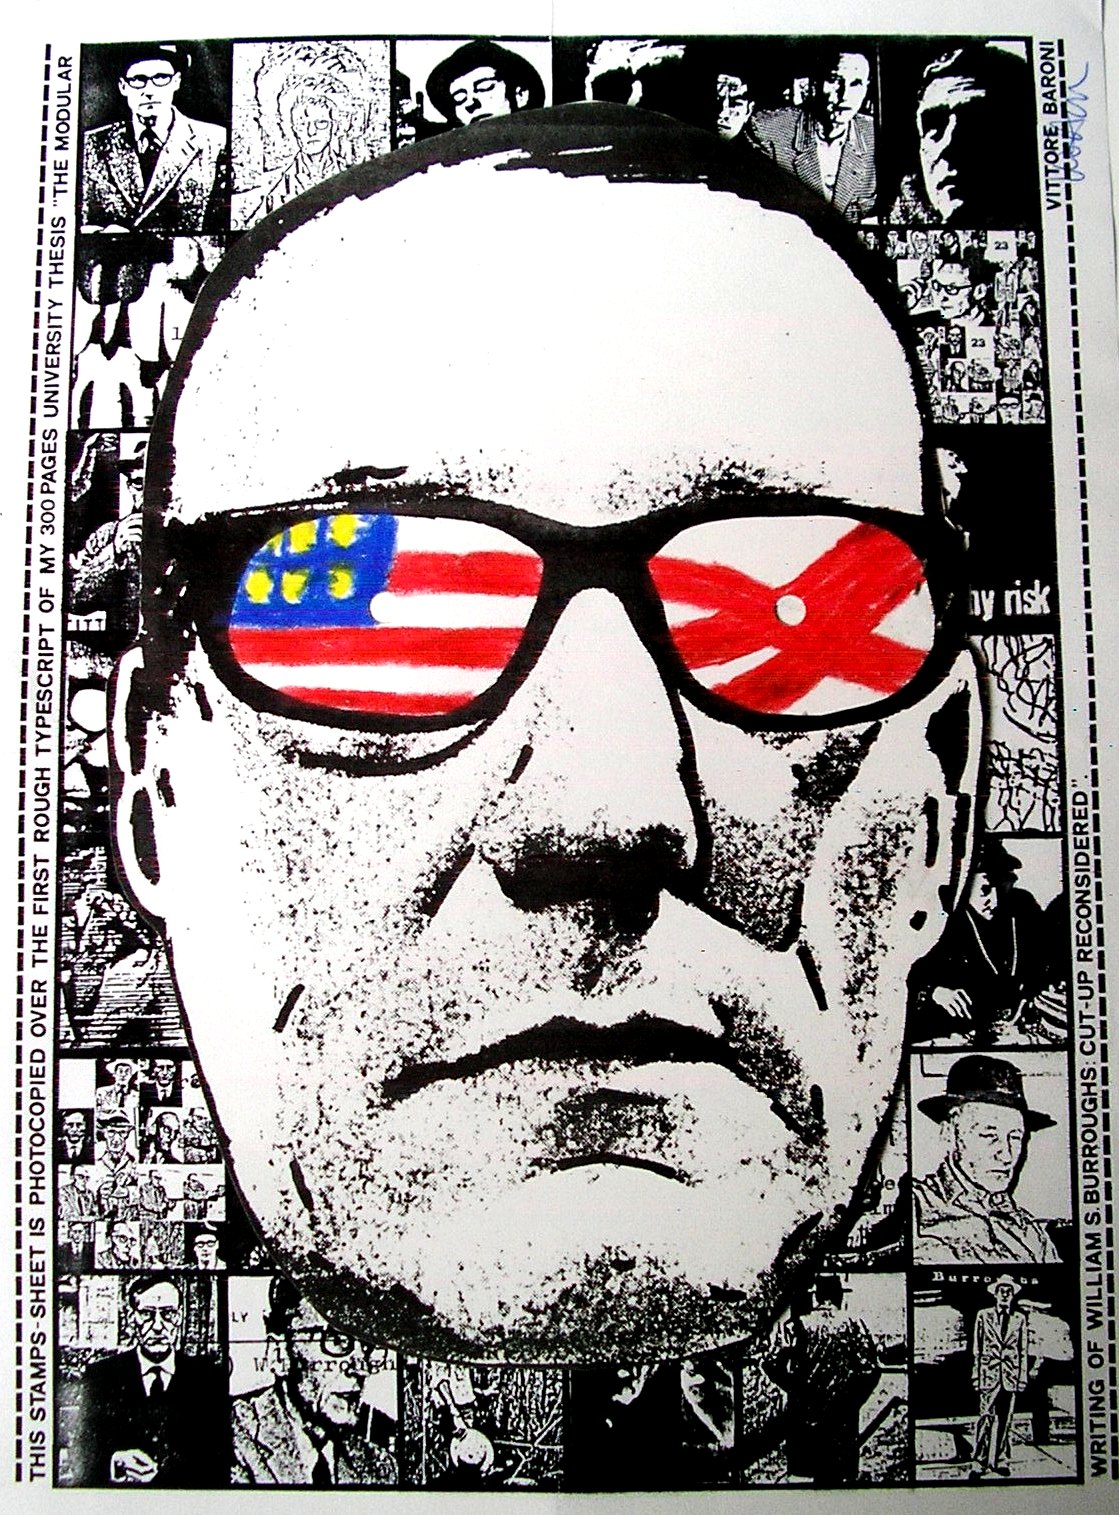 William S.Burroughs - Maschera e francobolli da TRAX The Brain Factory, di Vittore Baroni